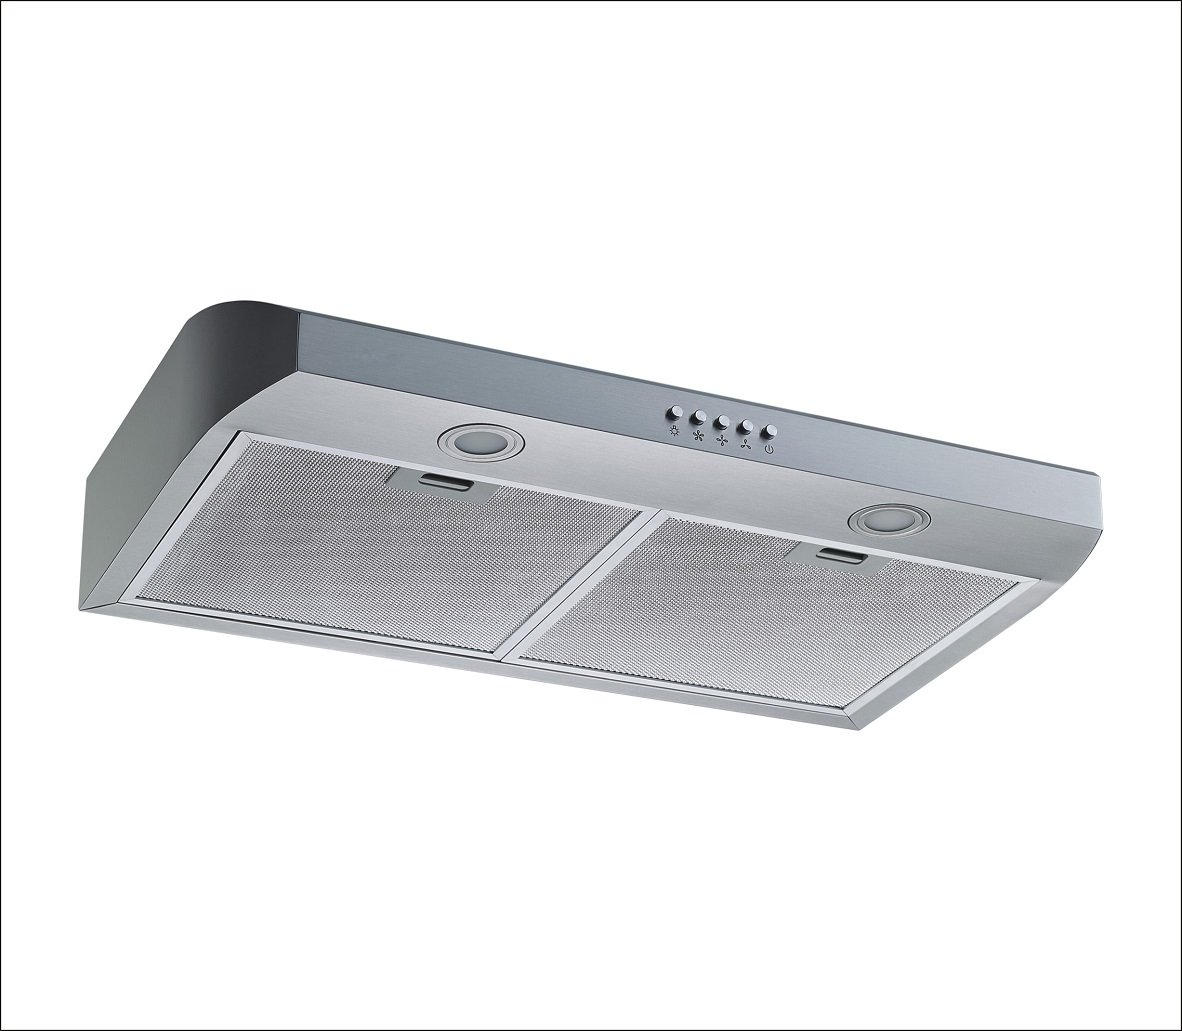 Winflo 30'' Under Cabinet Stainless Steel European Slim Design Kitchen Range Hood Push Button Control Included Dishwasher-Safe Aluminum Filters and LED Lights